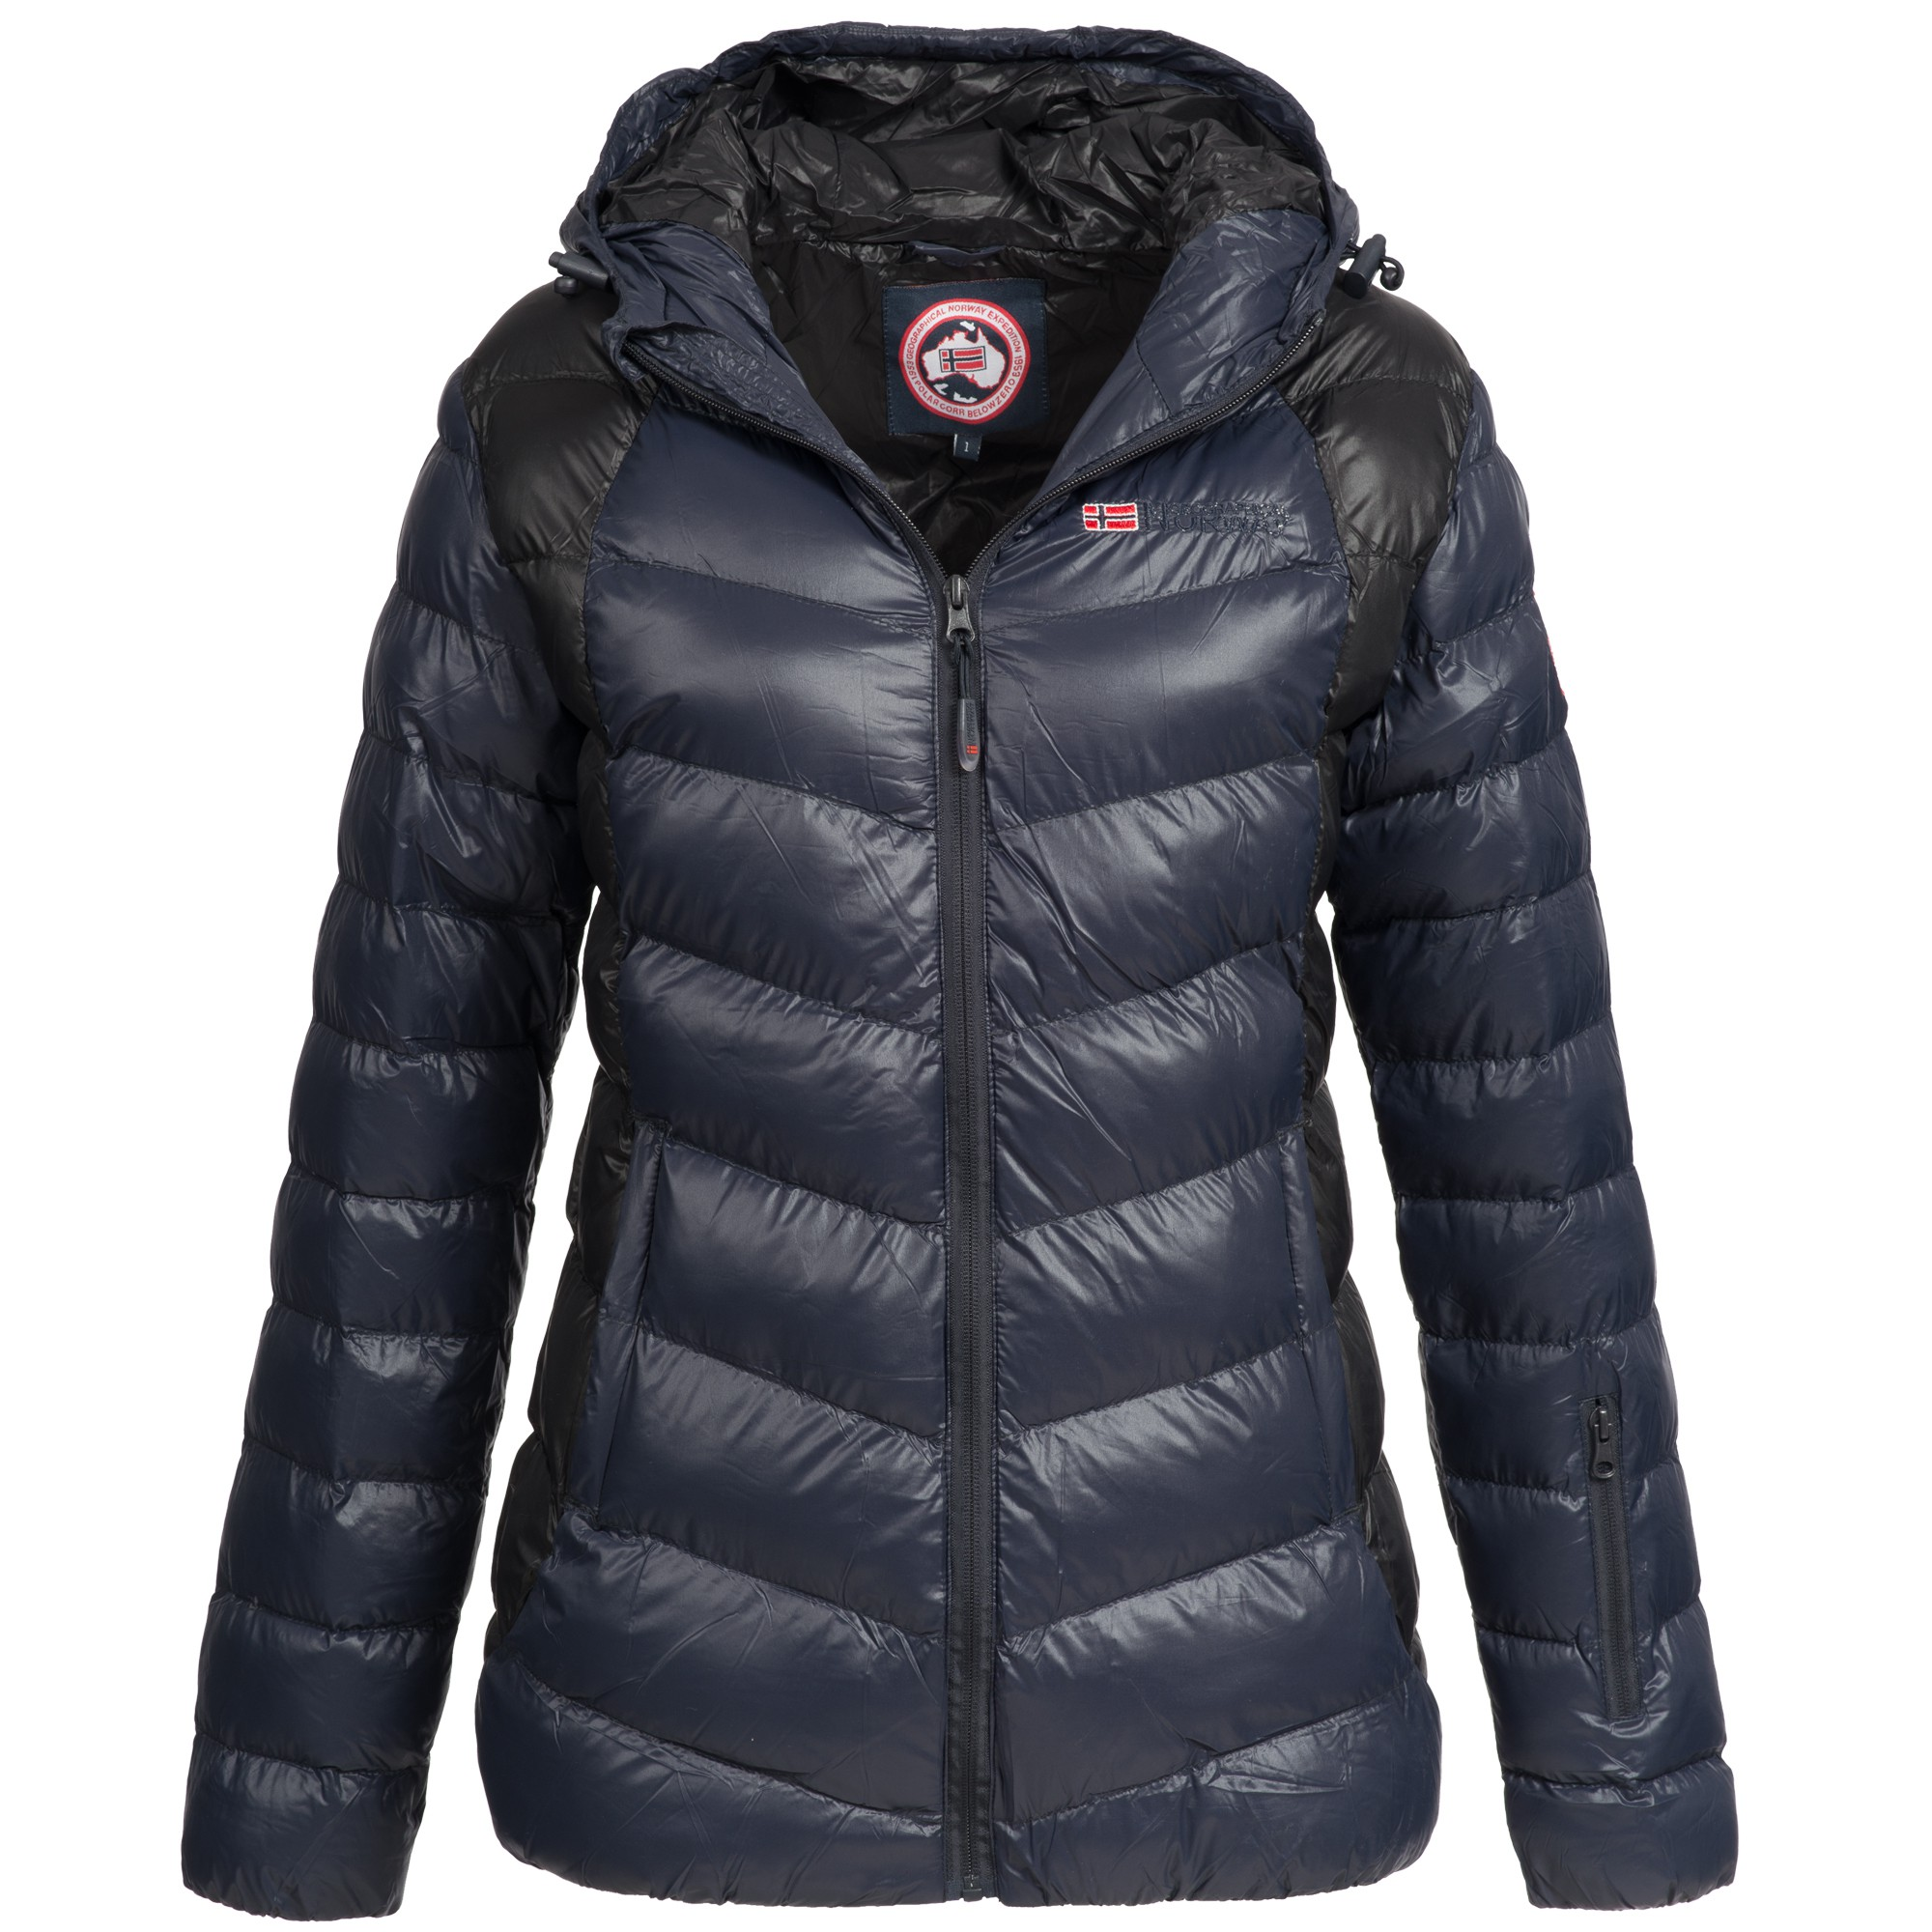 geographical norway anais damen mantel winterjacke jacke steppjacke gr s xxl ebay. Black Bedroom Furniture Sets. Home Design Ideas